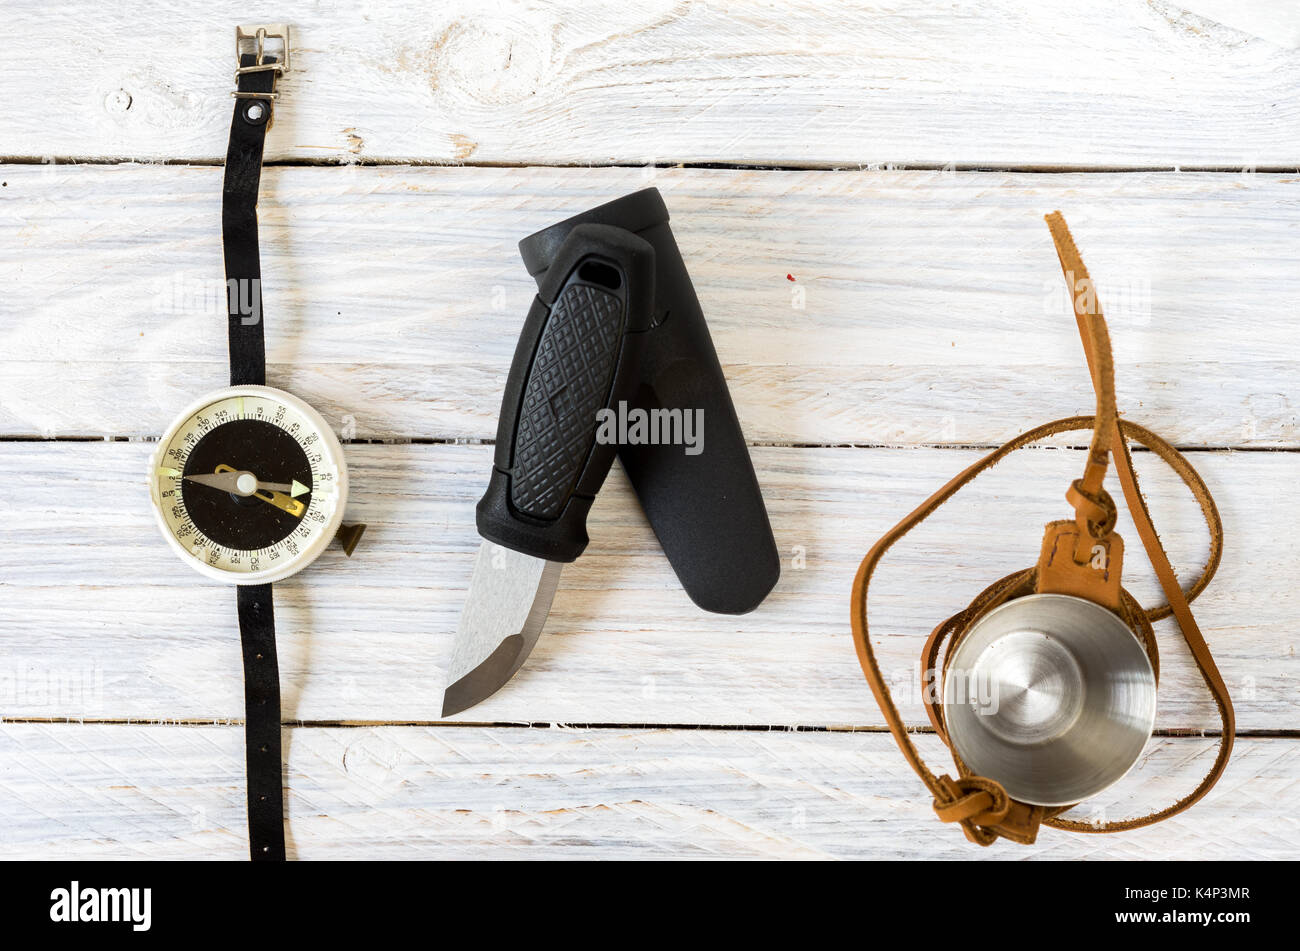 Knife with a fixed blade. A glass in a leather case. Compass for tourism. - Stock Image